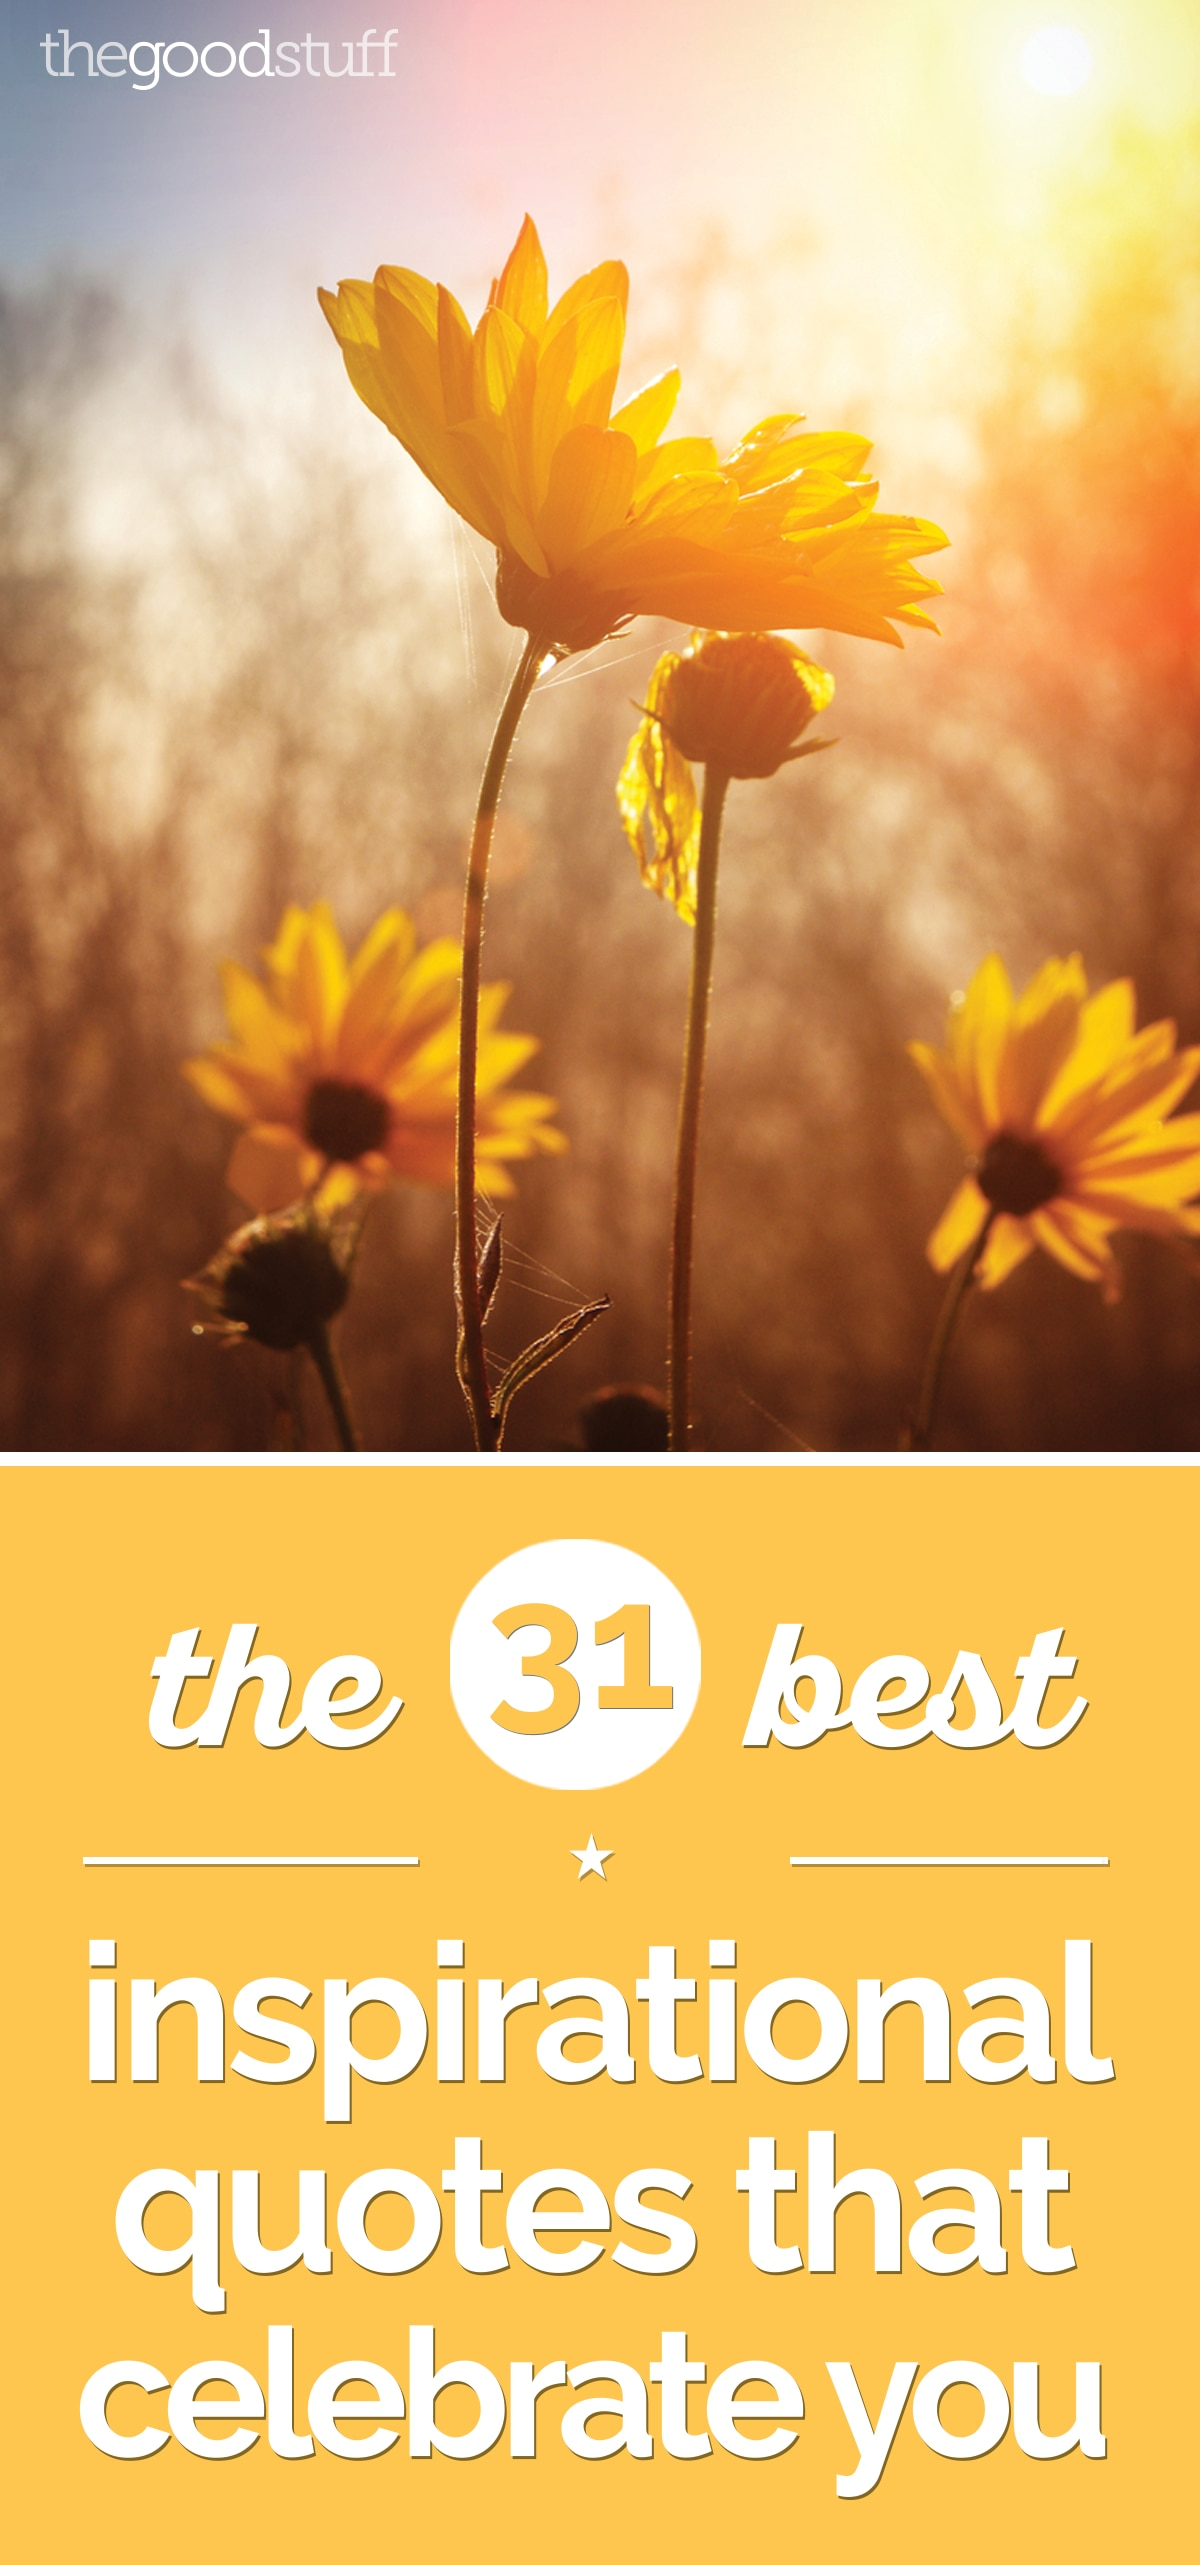 The 31 Best Inspirational Quotes That Celebrate You | the good stuff